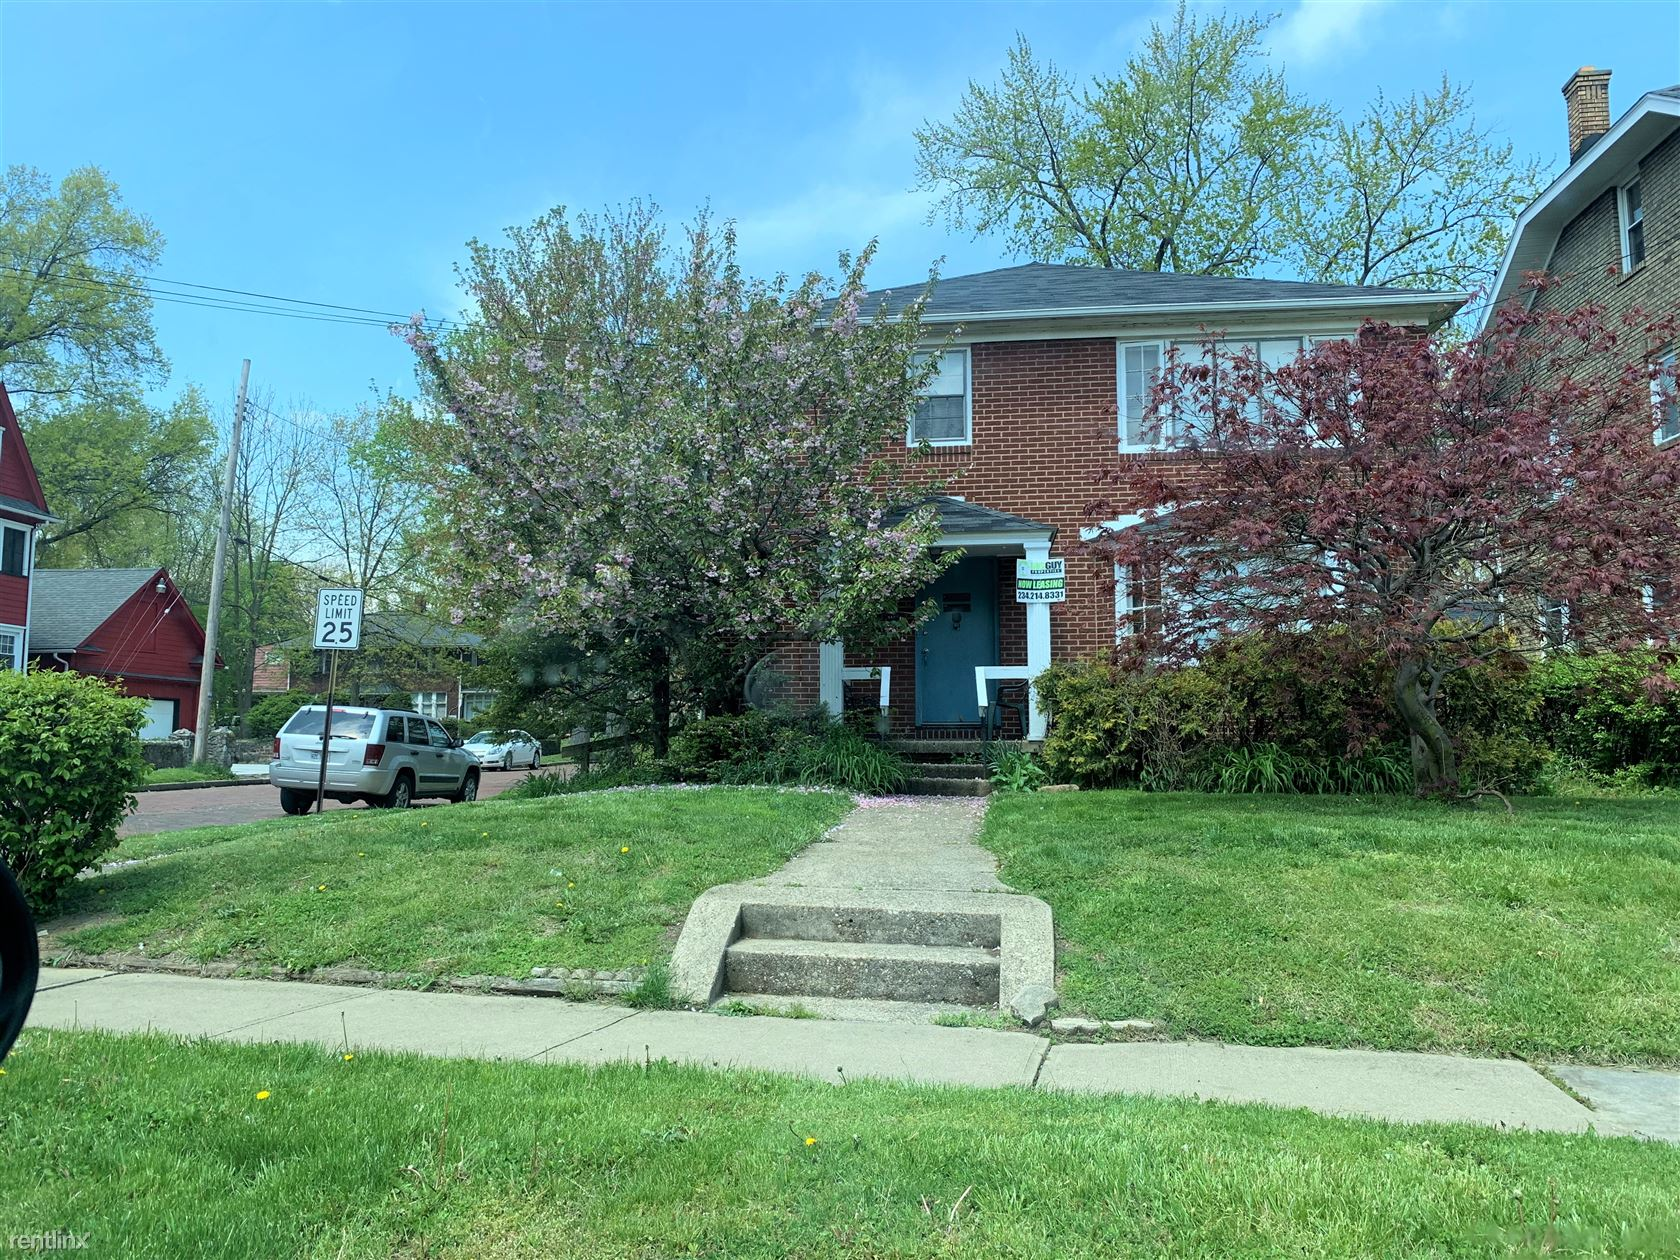 349 15th St NW, Canton, OH - $700